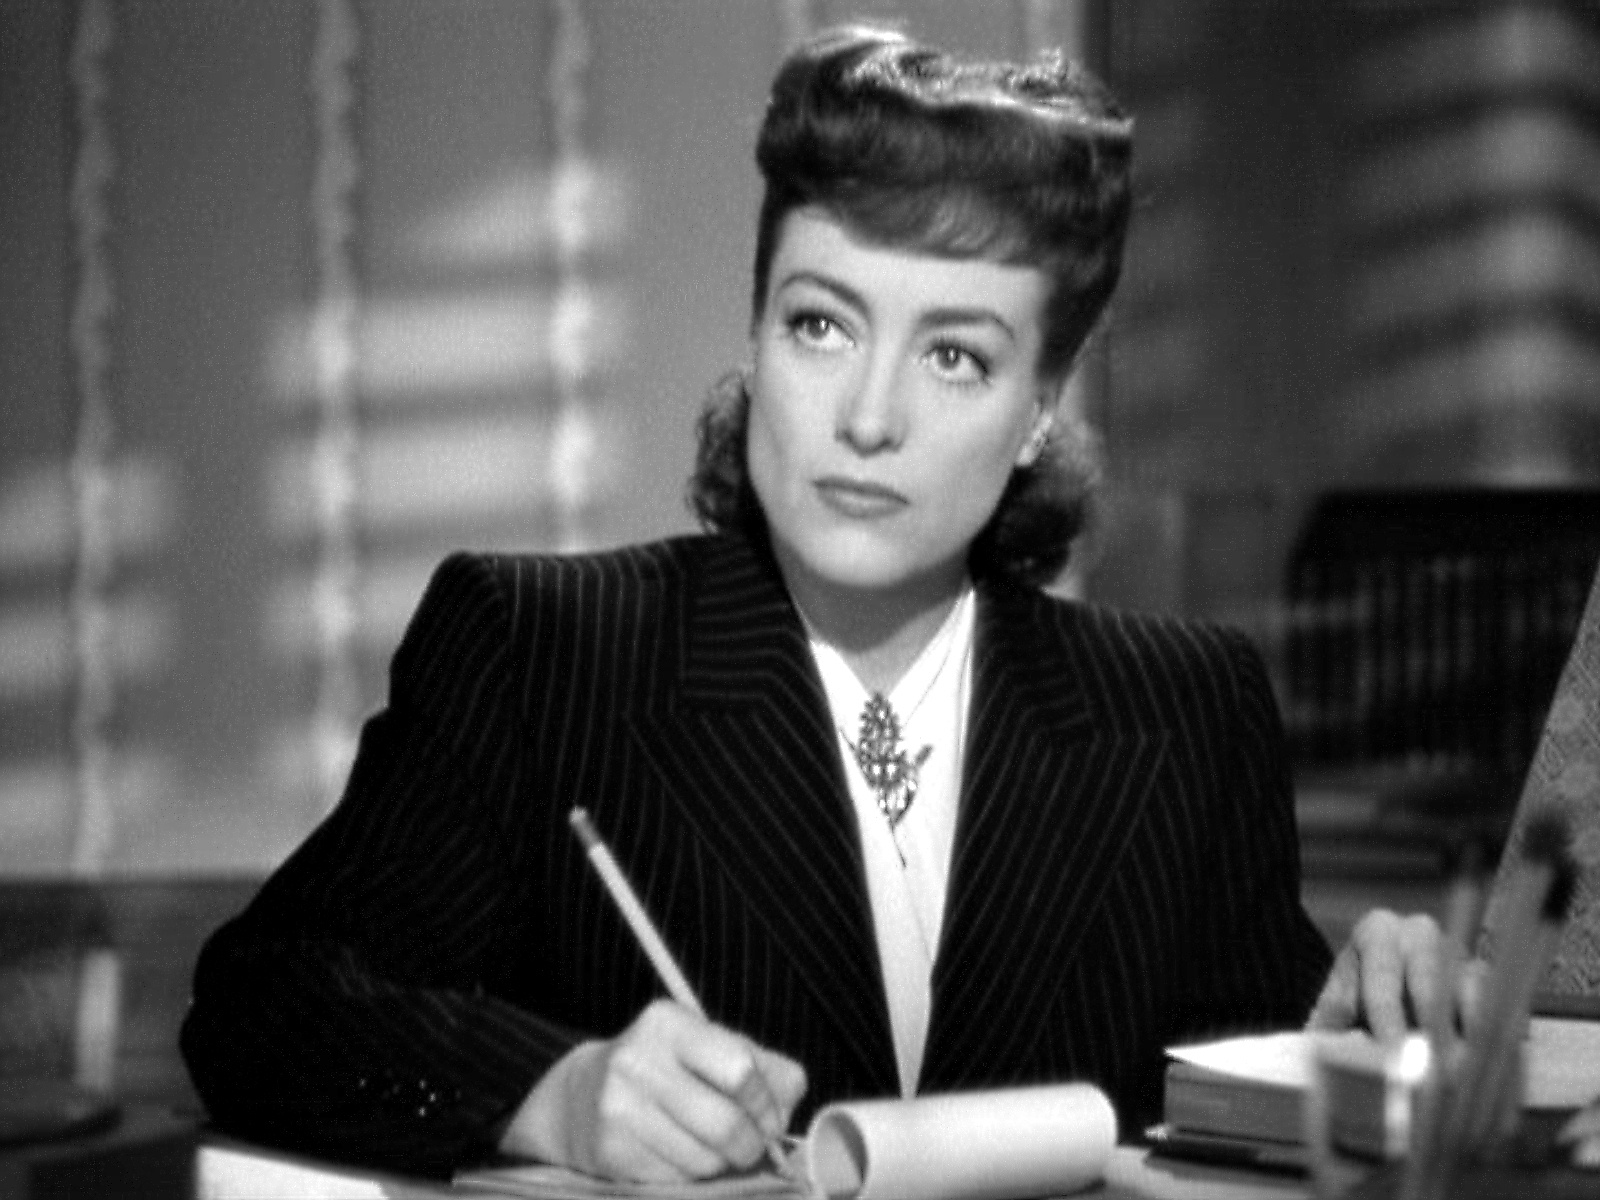 Joan Crawfordu0027s Oscar moment (ironically perhaps) was Mildred Pierce the story of a woman who sacrifices everything for her vicious ungrateful daughter.  sc 1 st  MostlyFilm & The Mummies Return | MostlyFilm